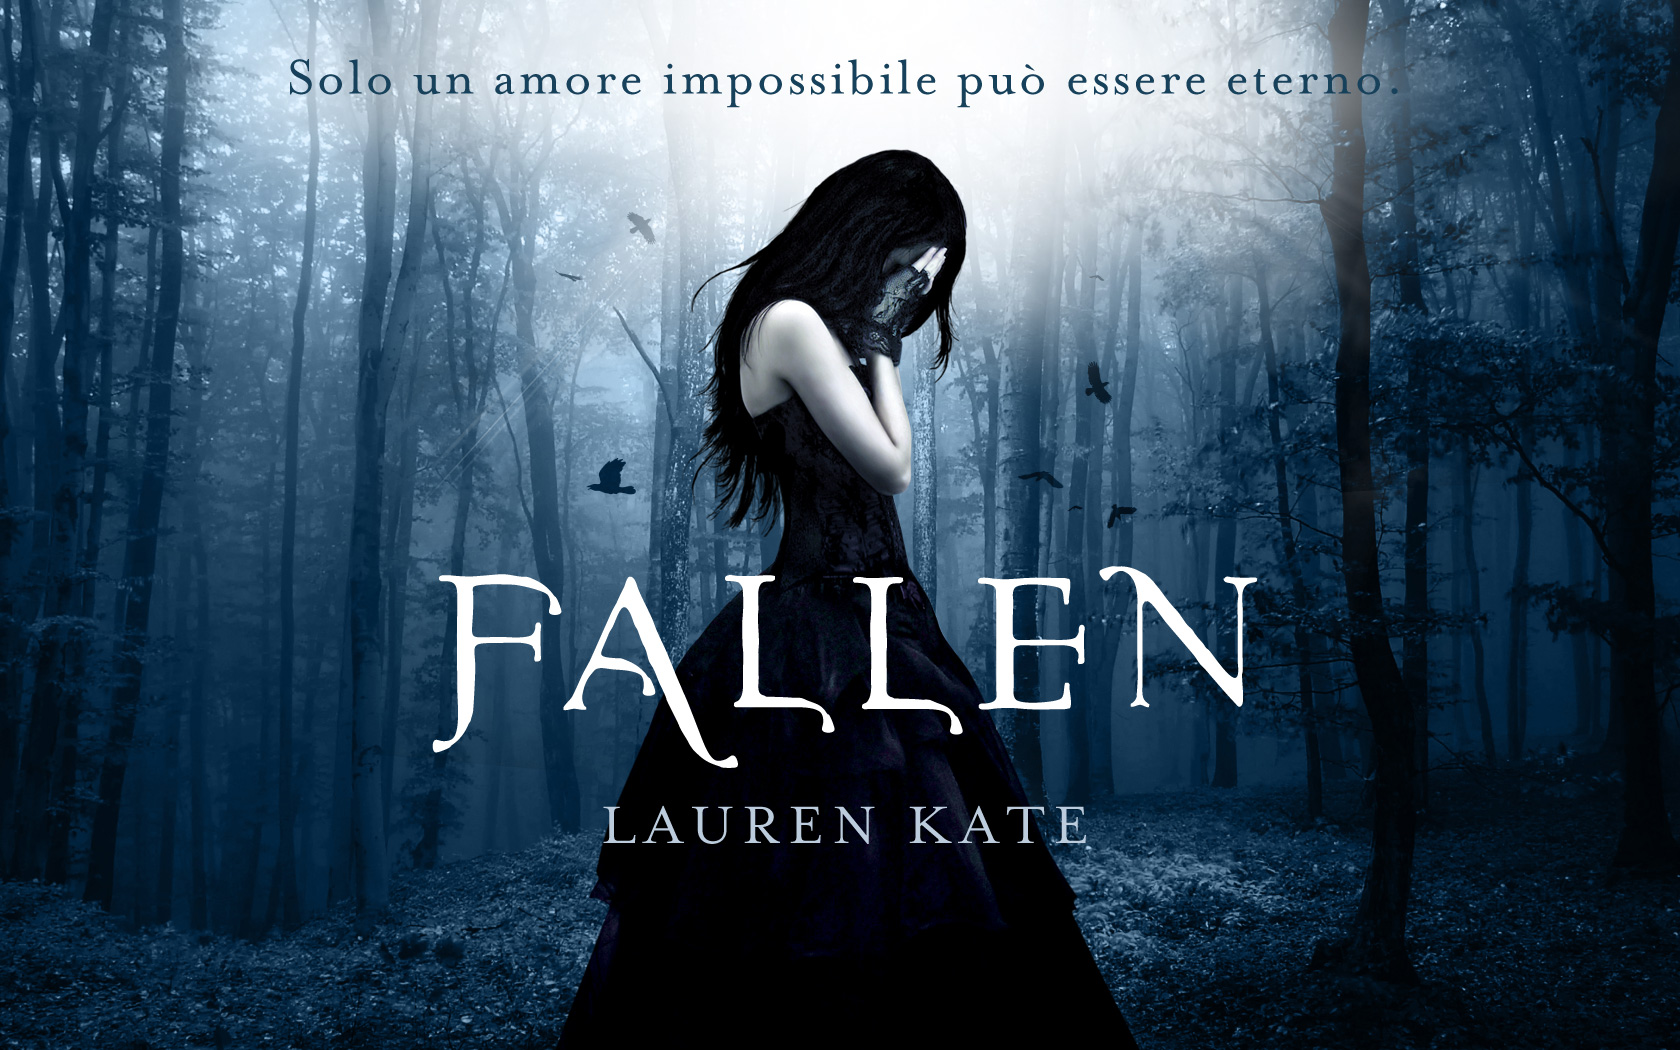 Scott-Hicks-Lauren-Kate-Fallen